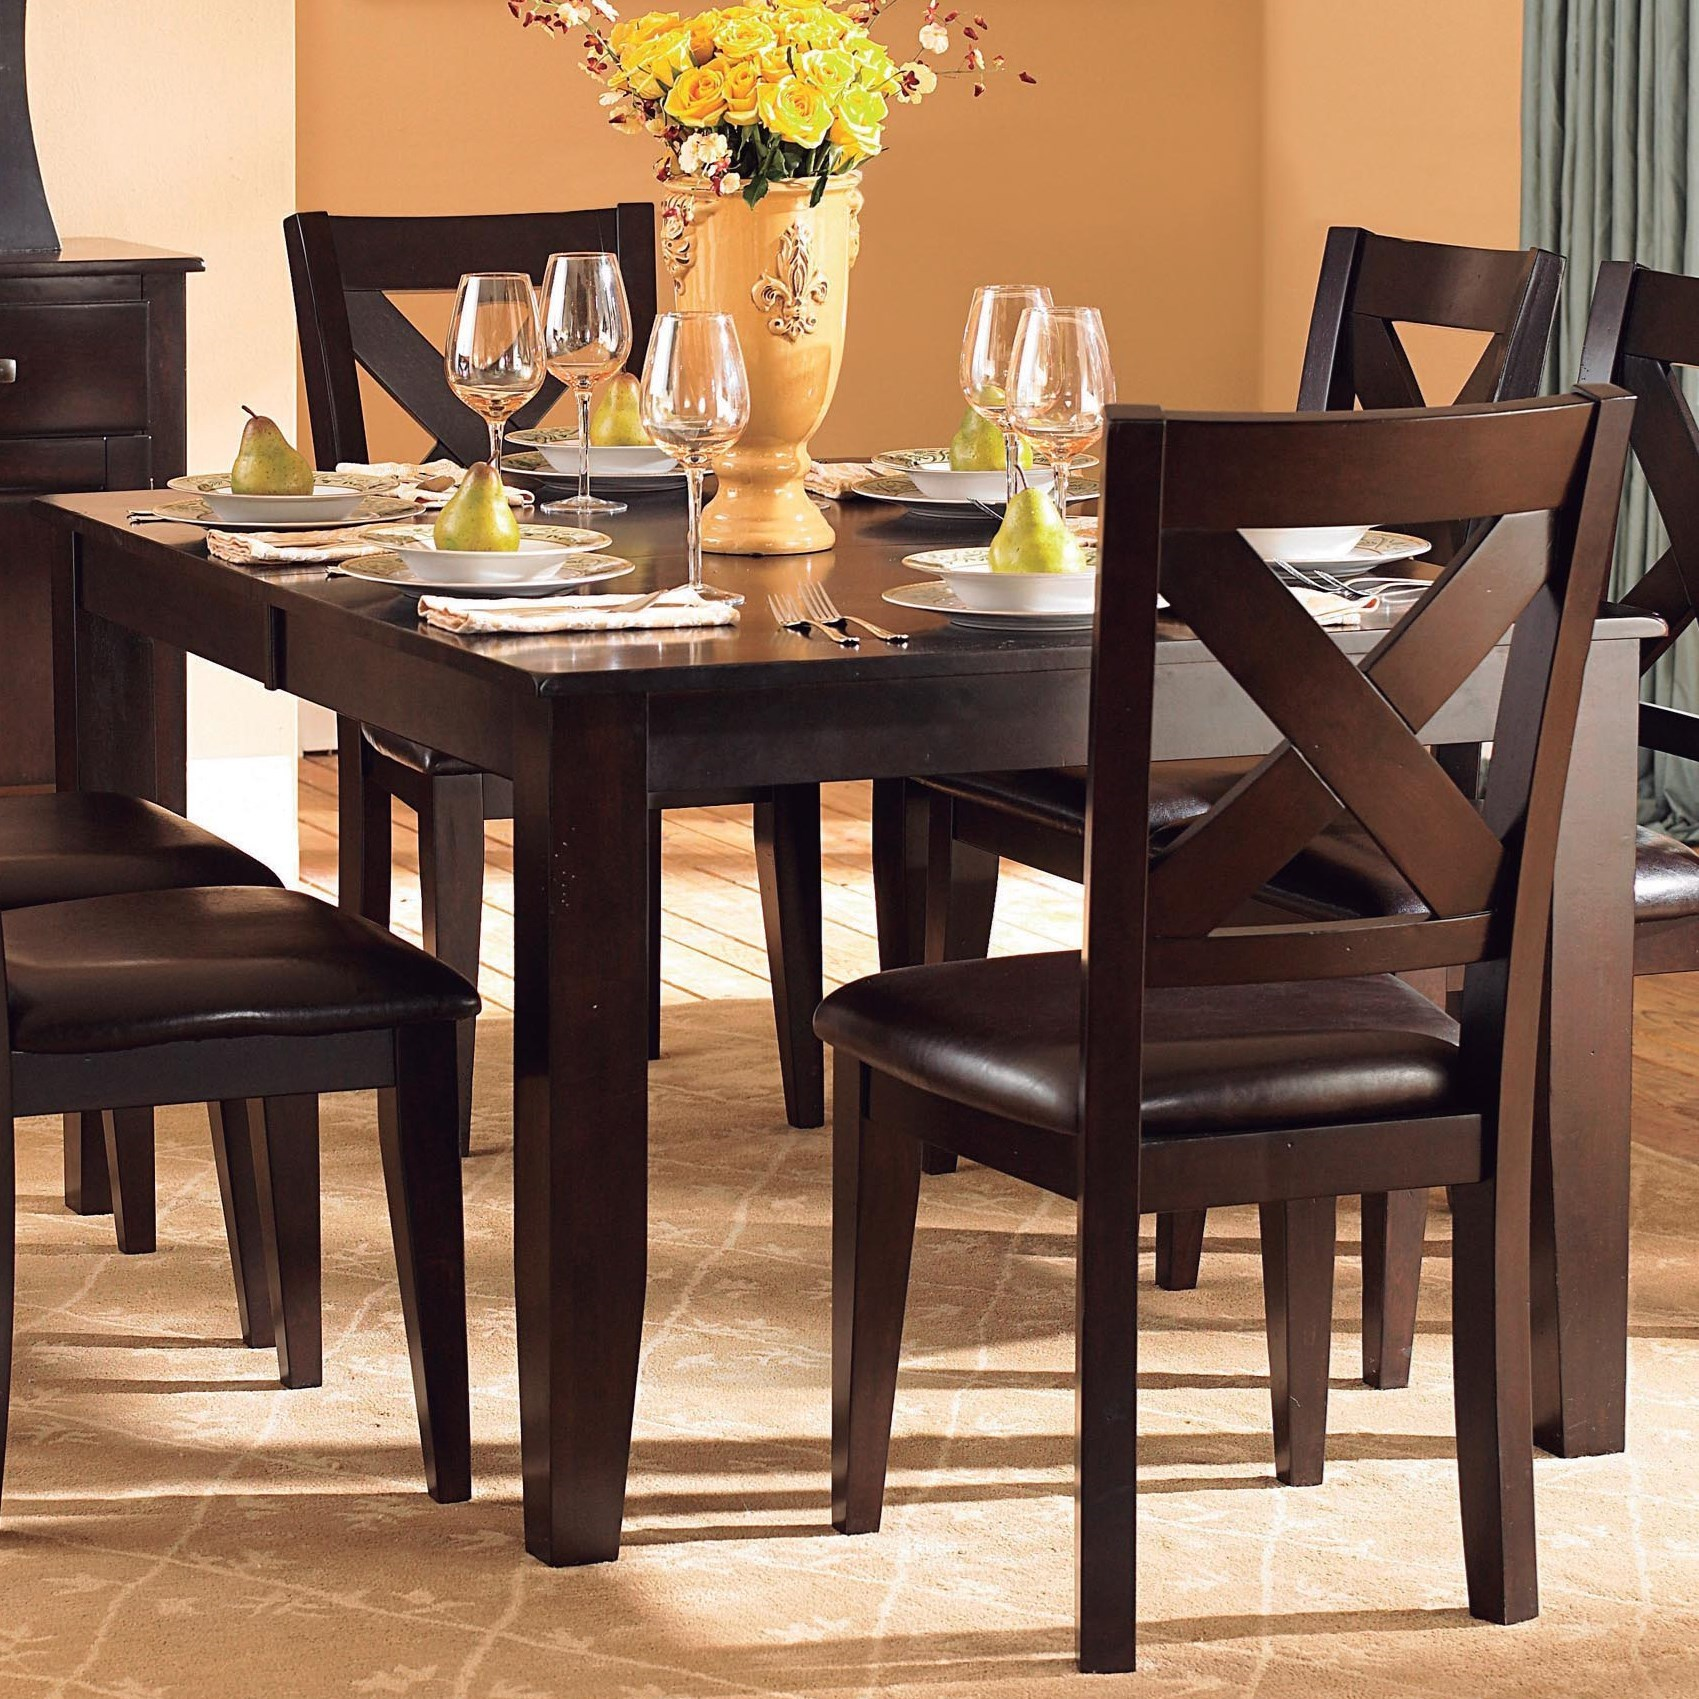 Dining Room Table With Leaf: Homelegance Crown Point Transitional Dining Table With 18